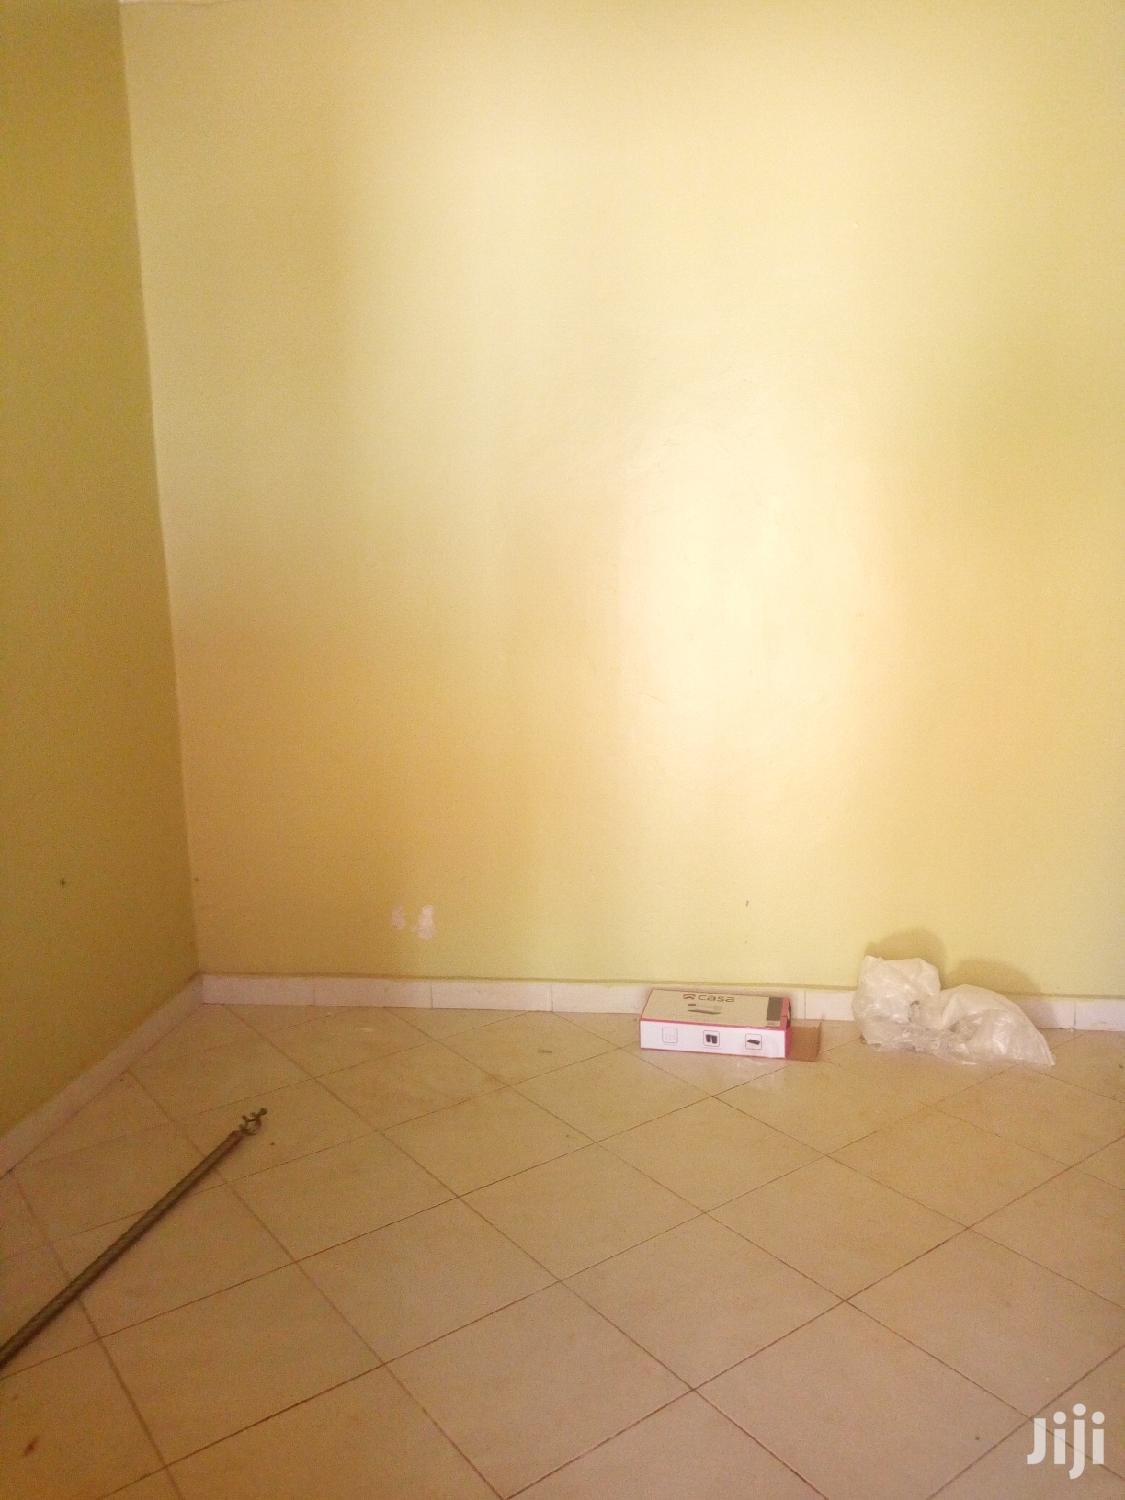 Archive: Najjera Modern Double Room at the Cheapest Price for Rent